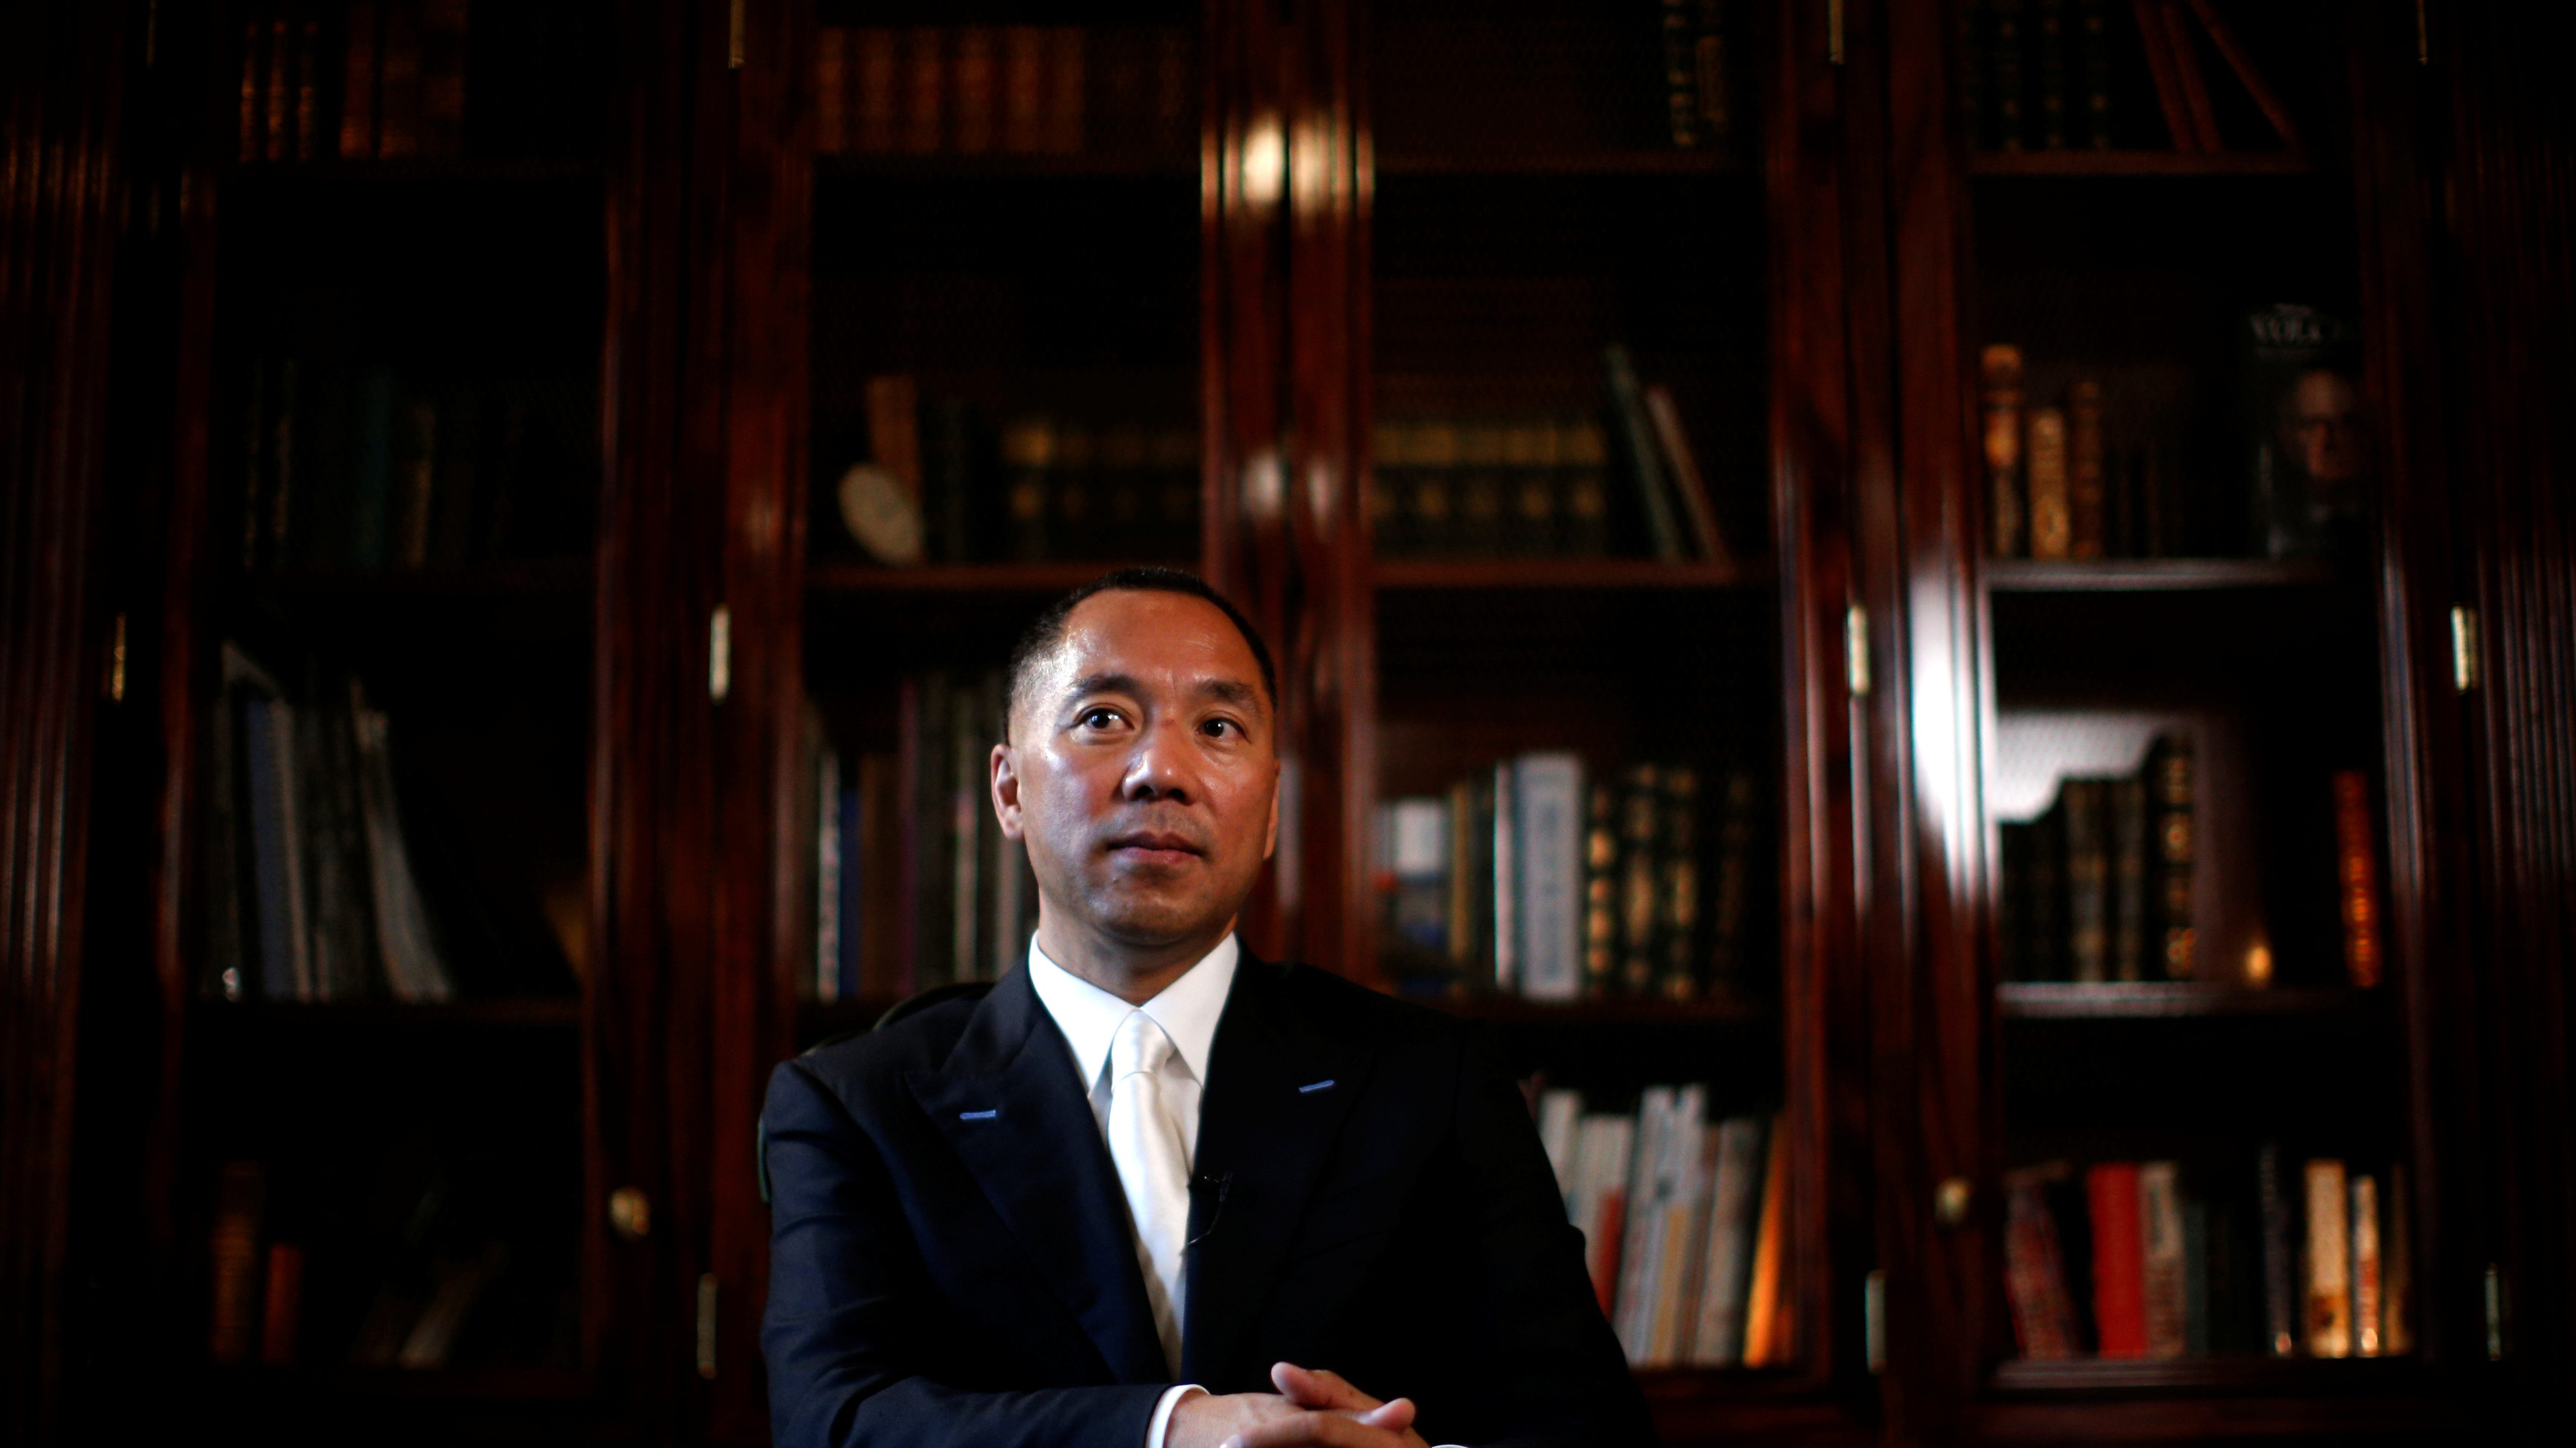 Facebook blocked dissident Guo Wengui after the Chinese